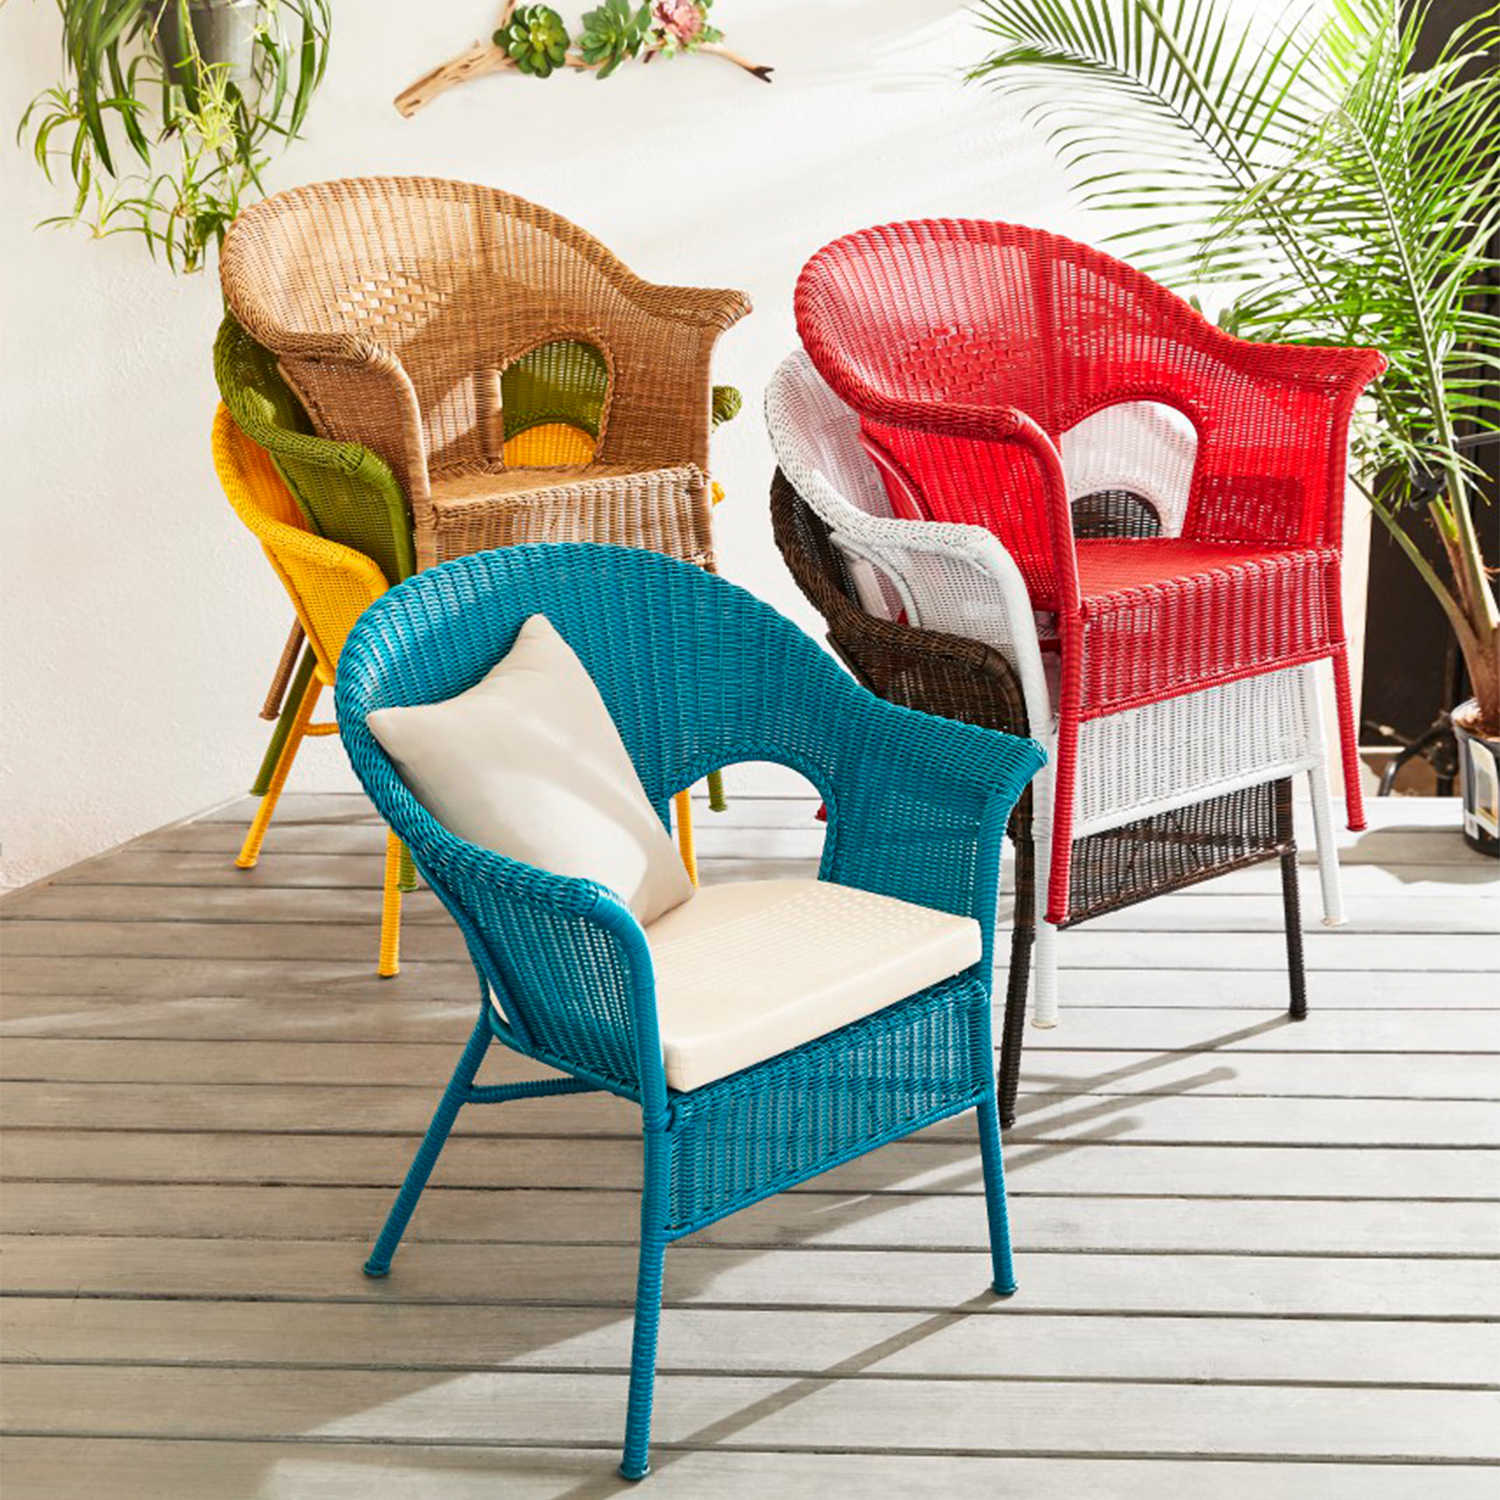 Casbah Red Stacking Chair